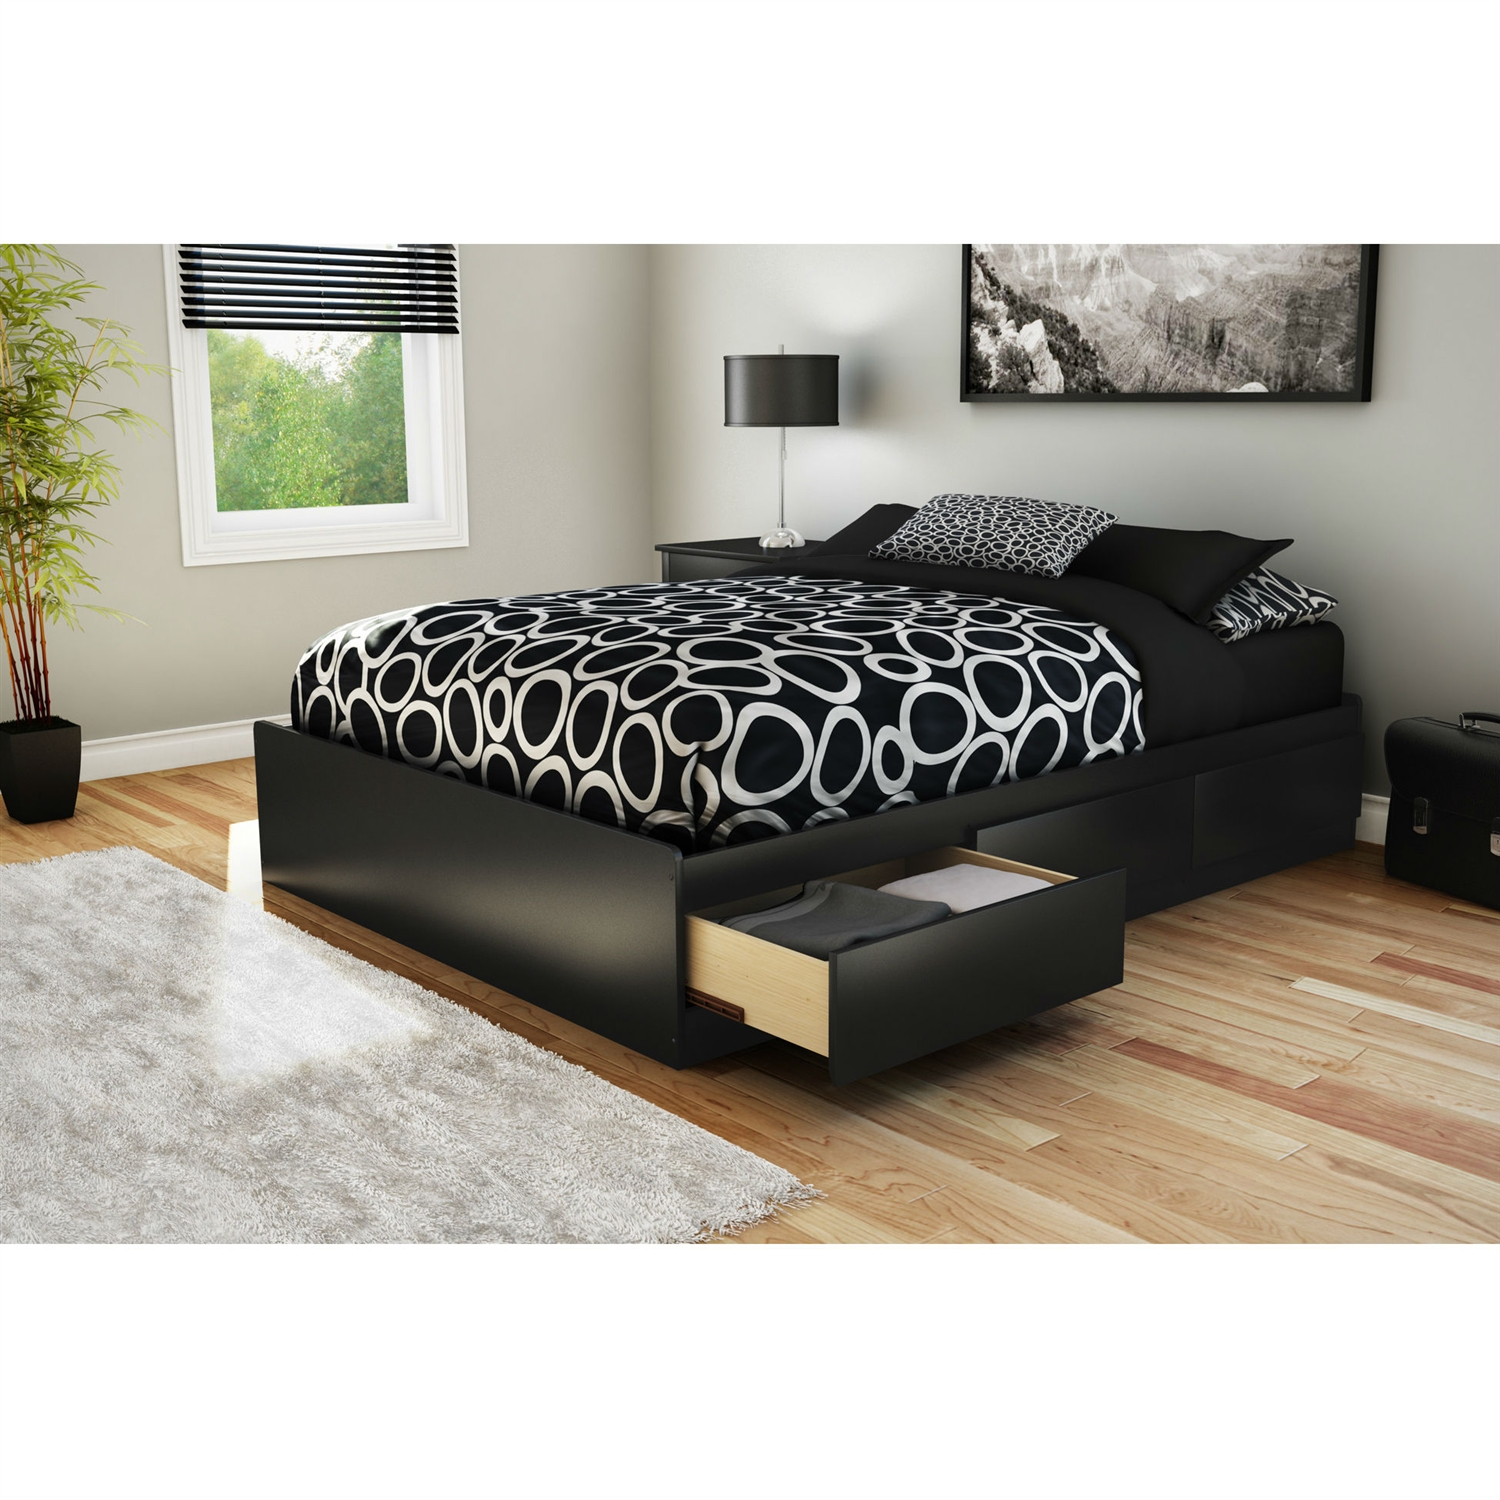 Full Size Modern Platform Bed With 3 Storage Drawers In Black |  FastFurnishings.com